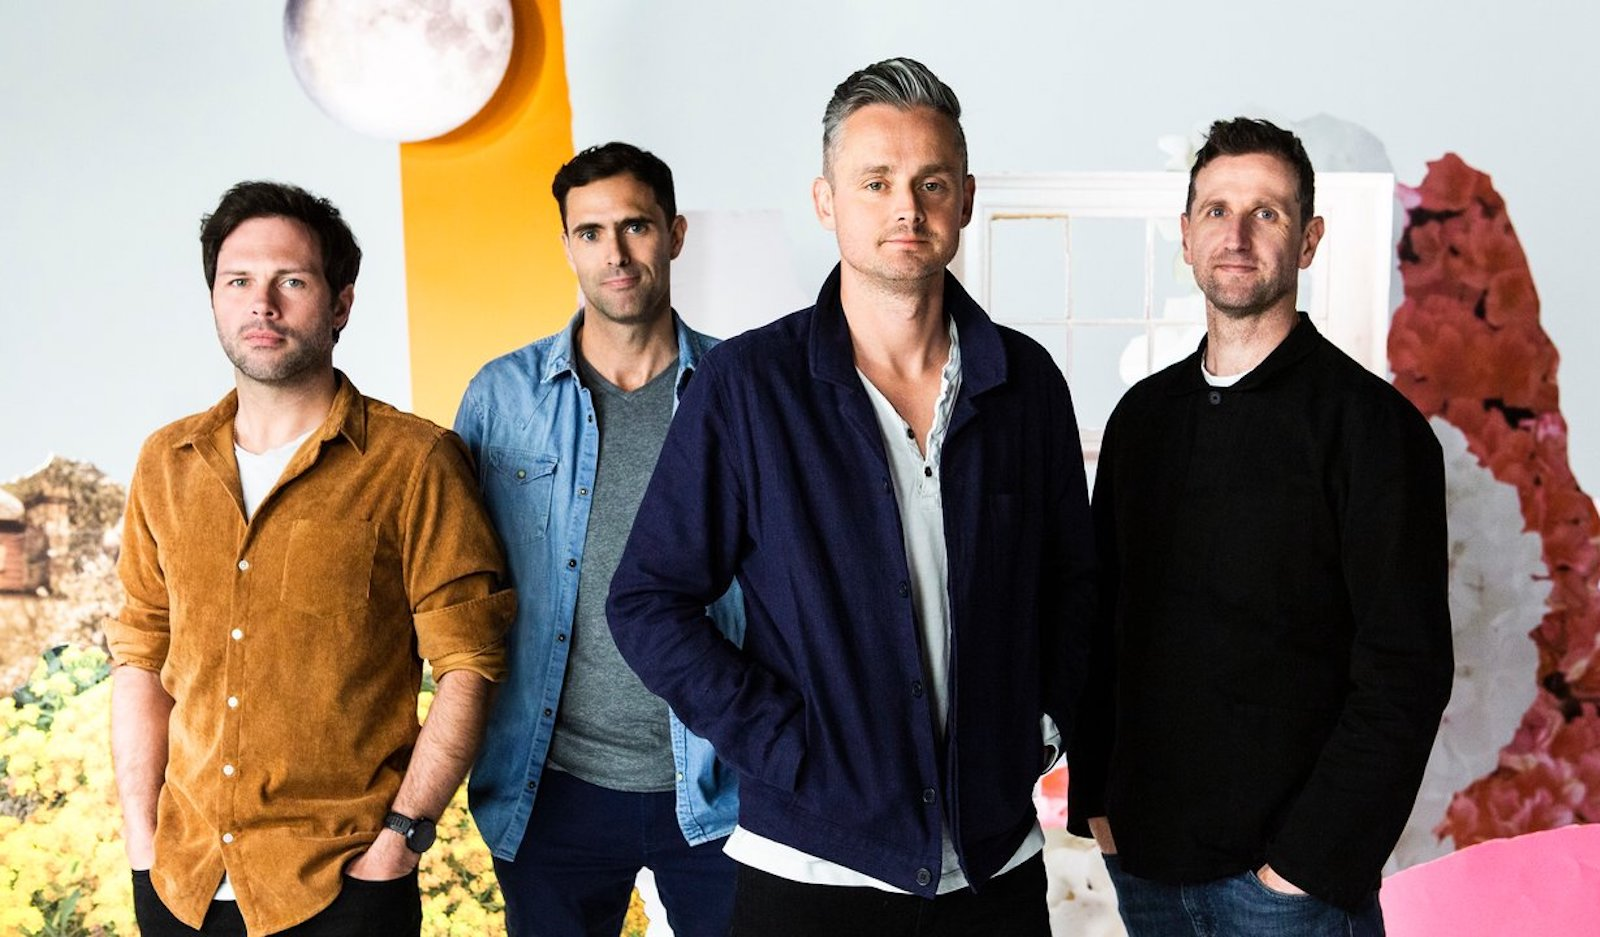 Keane Cause And Effect Album Review